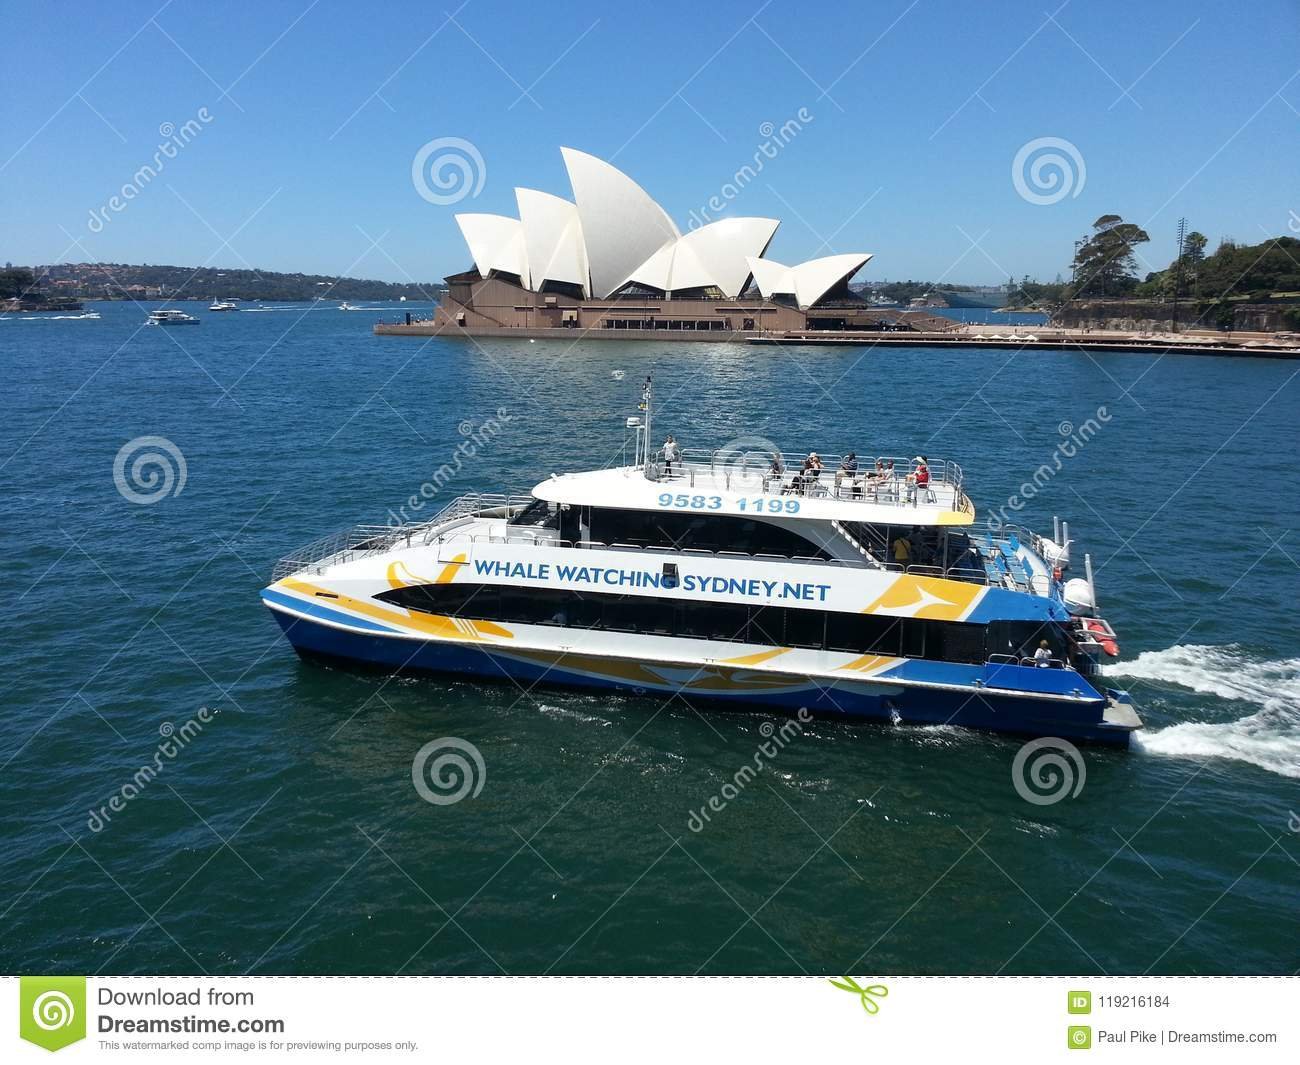 Whale Watching Boat leaving Sydney harbour